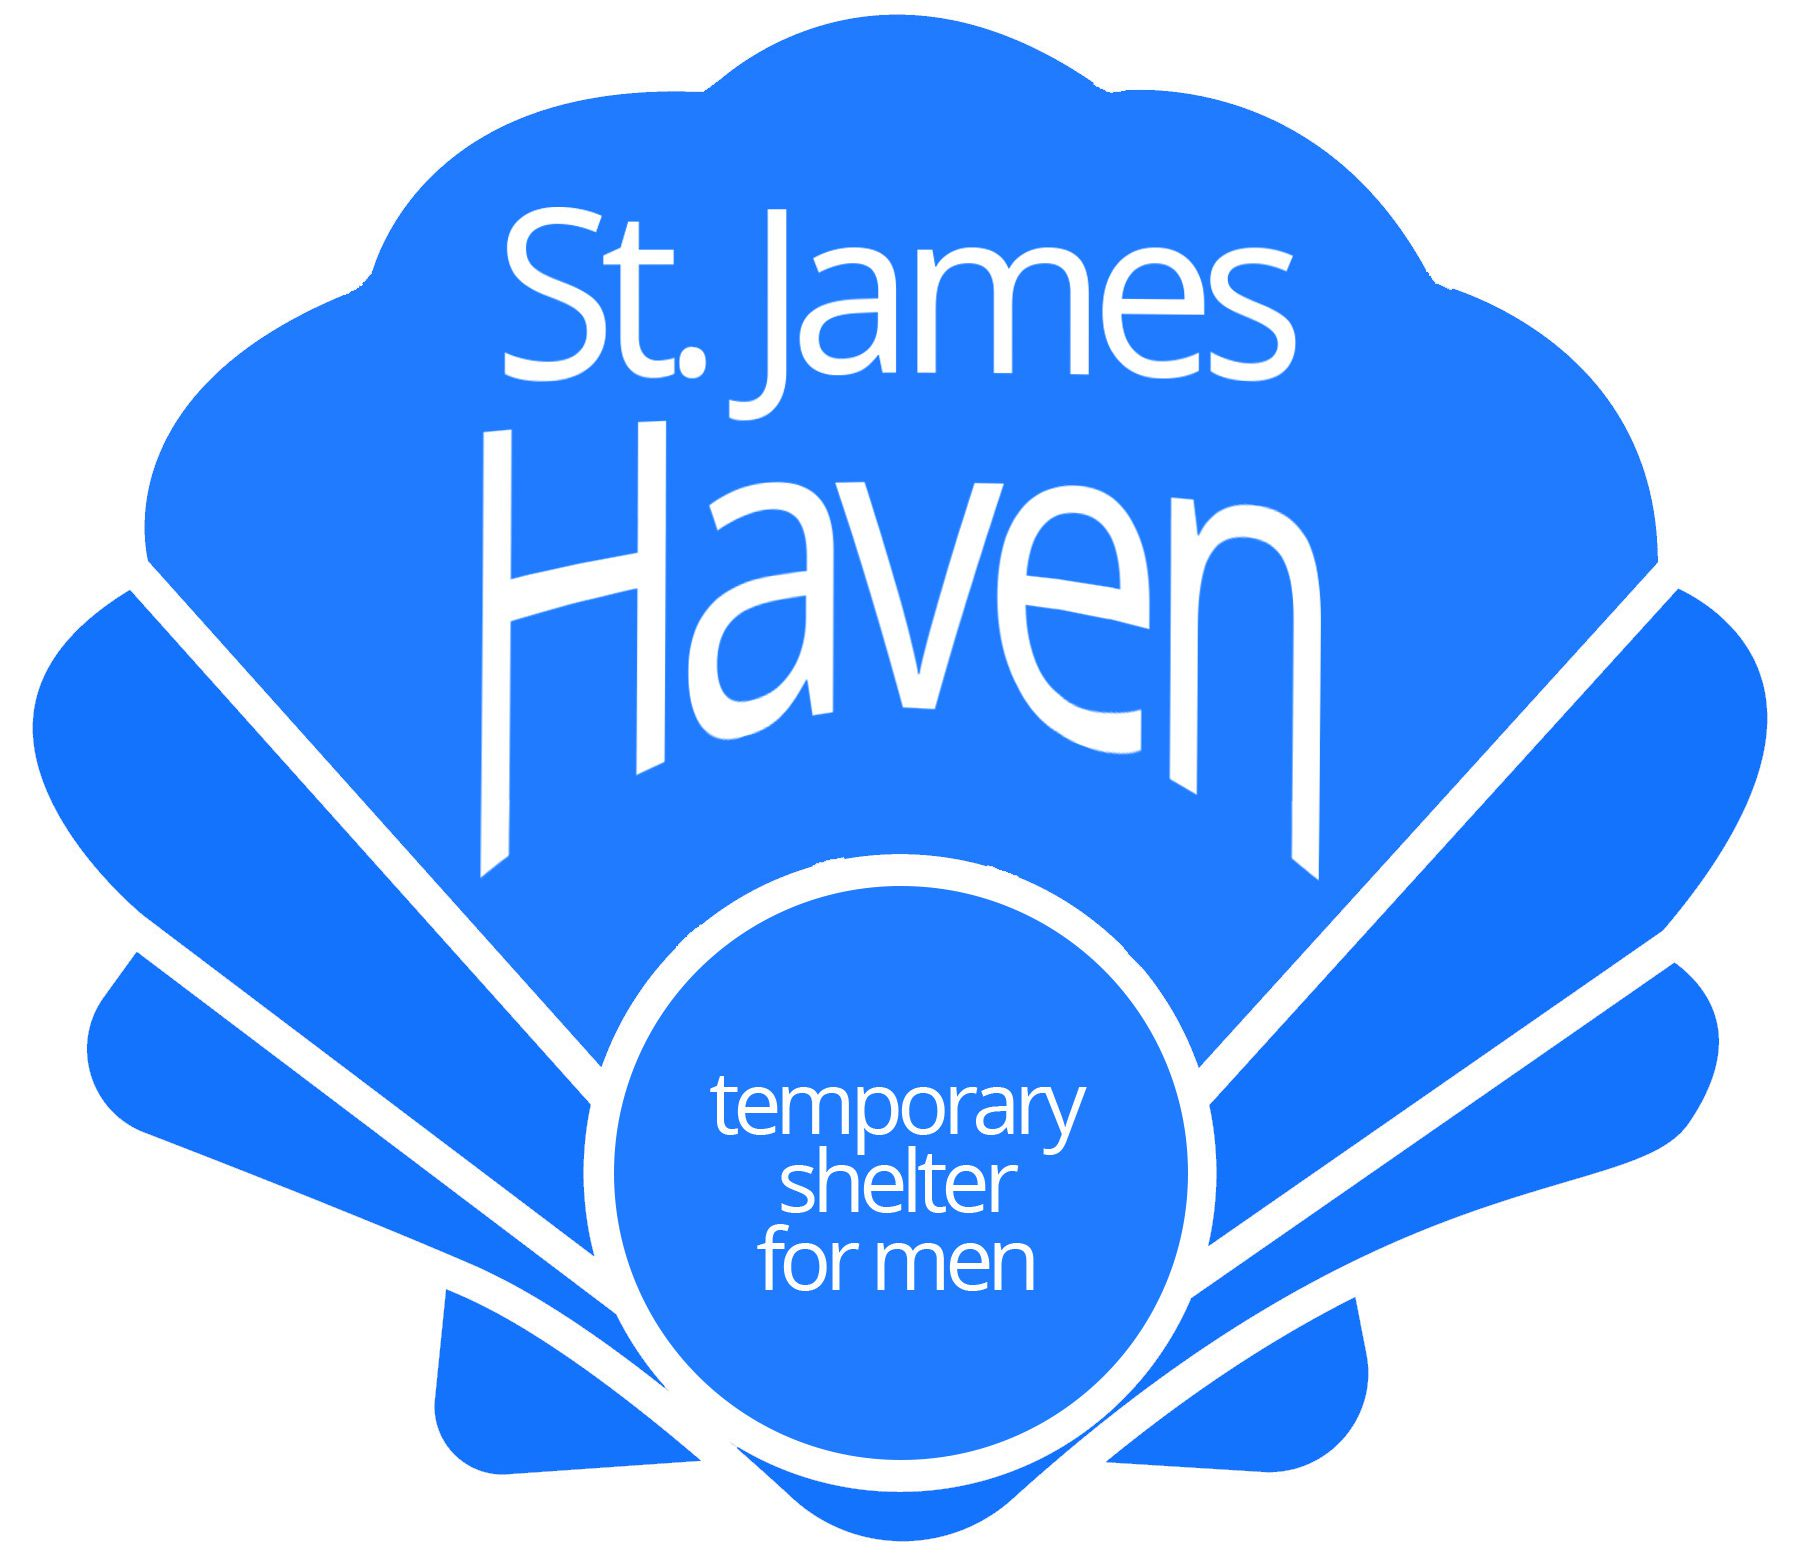 St. James Haven